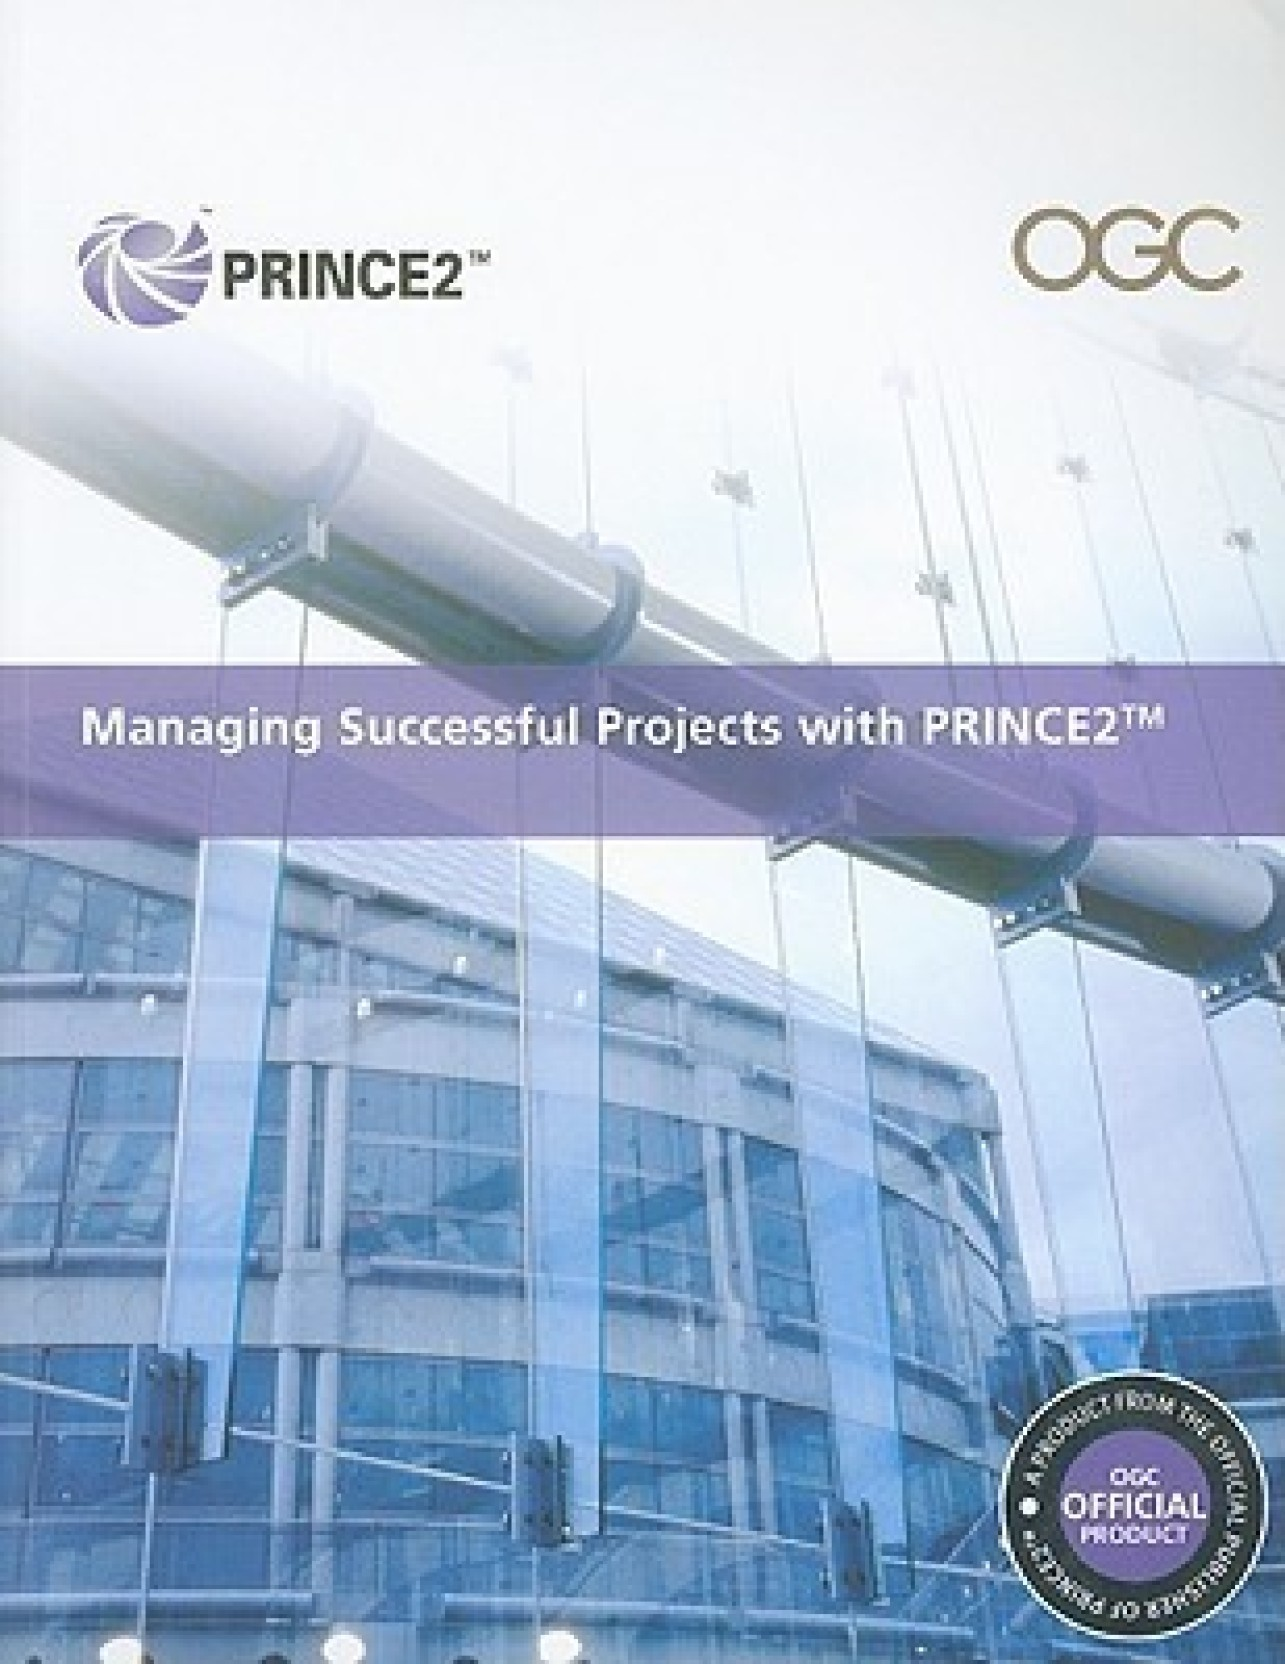 Managing Successful Projects with PRINCE2. Share